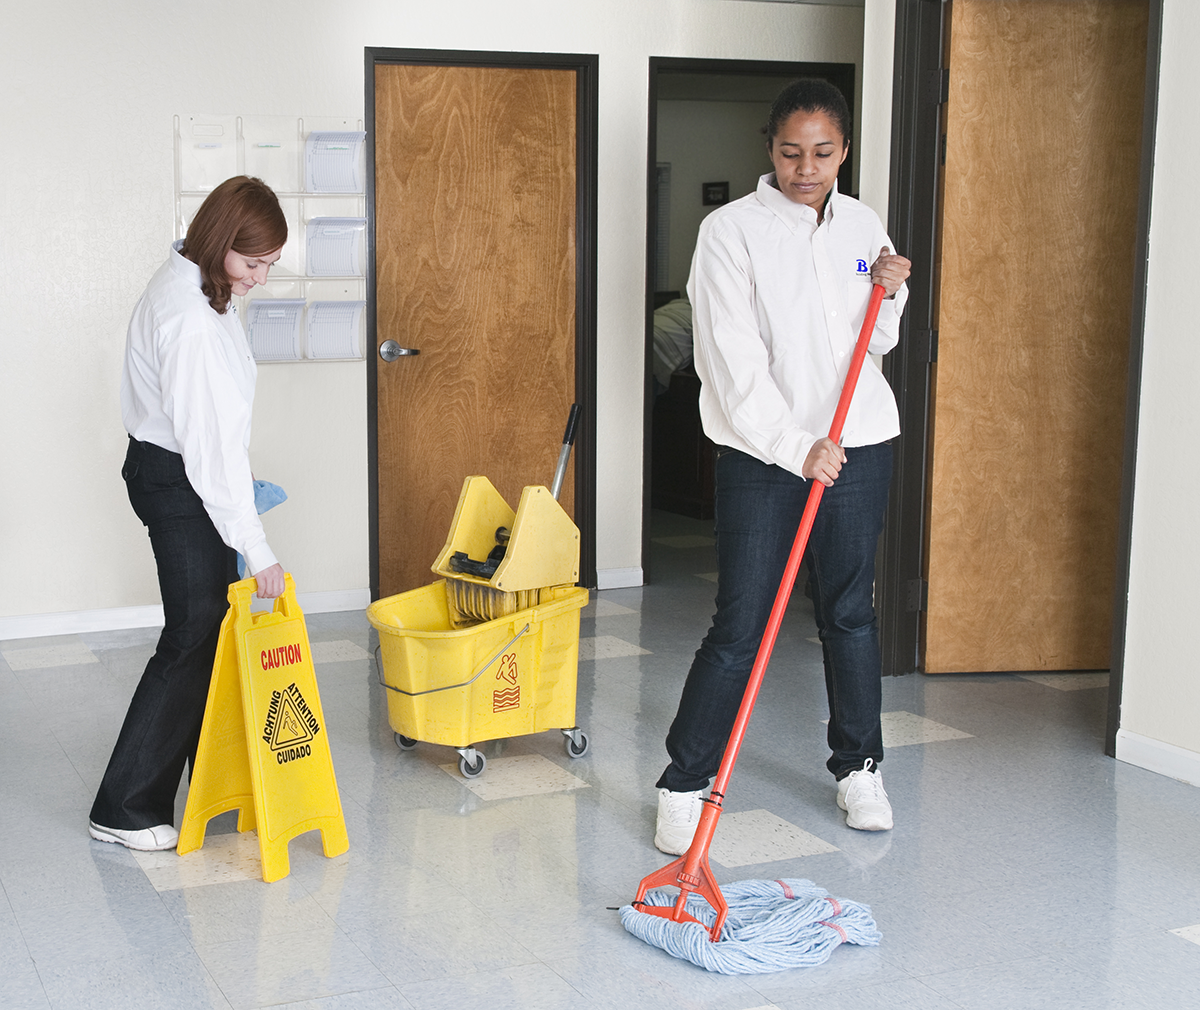 Beneficial Building Services Employees Mopping Floor